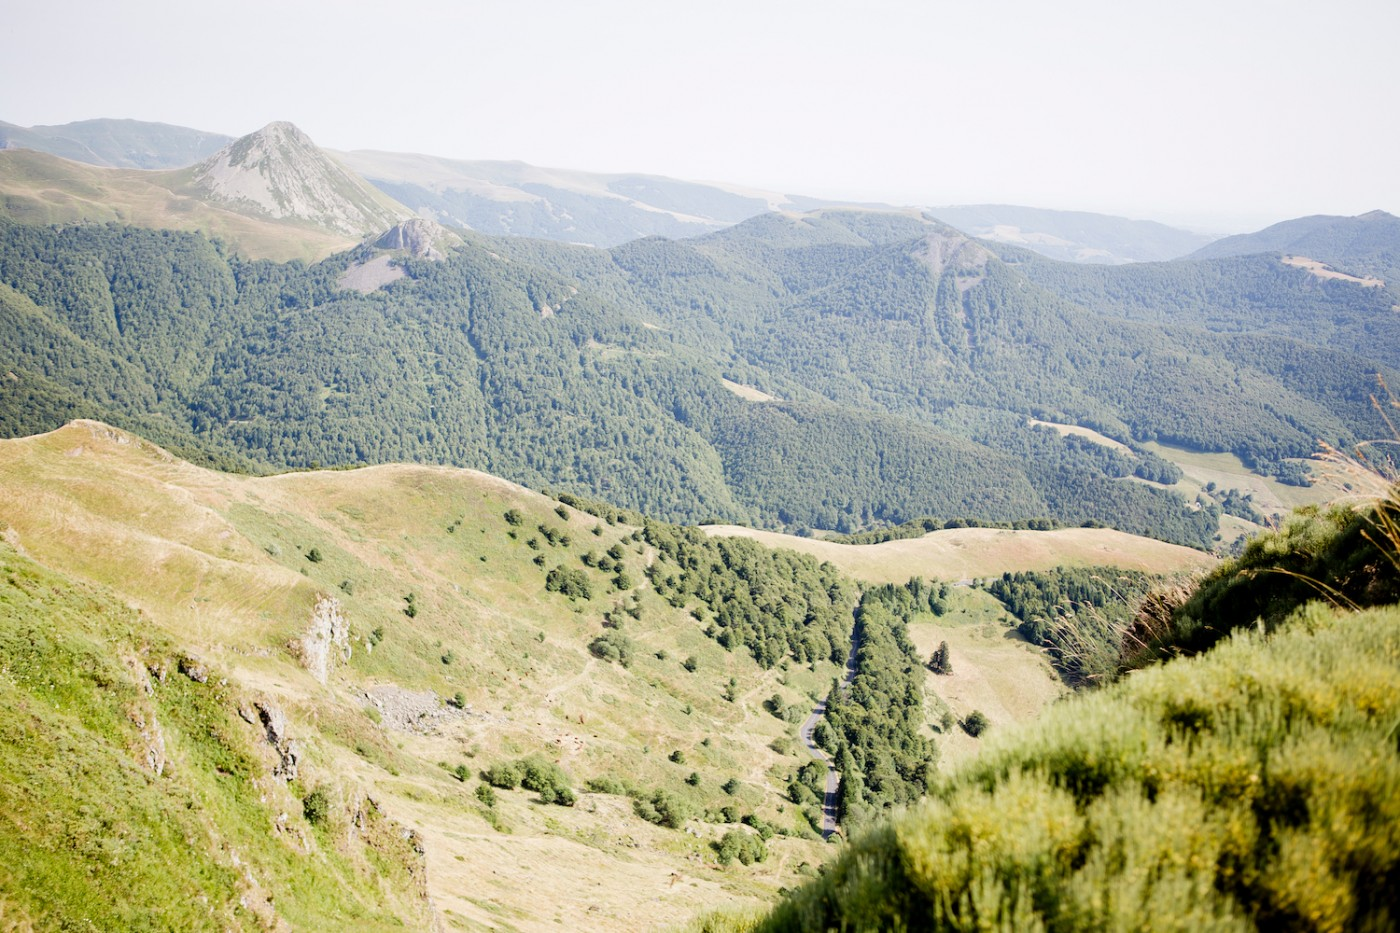 The Golden Bun | Tour de France, Monts du Cantal, Puy Mary, Auvergne, Cantal, Holiday in France